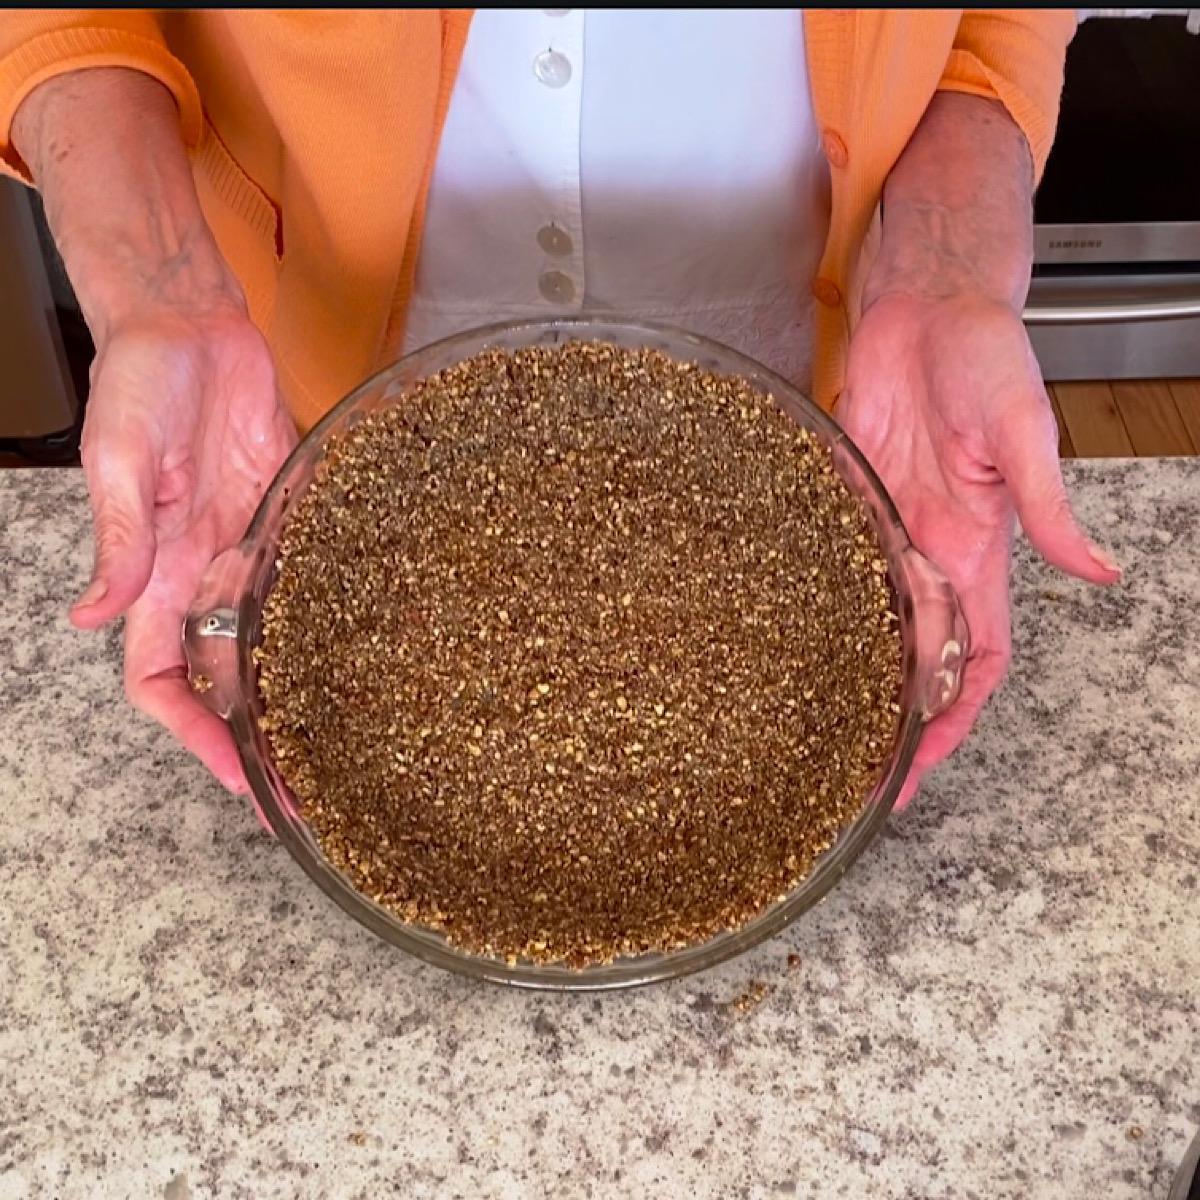 Baked nut crust for low carb pies